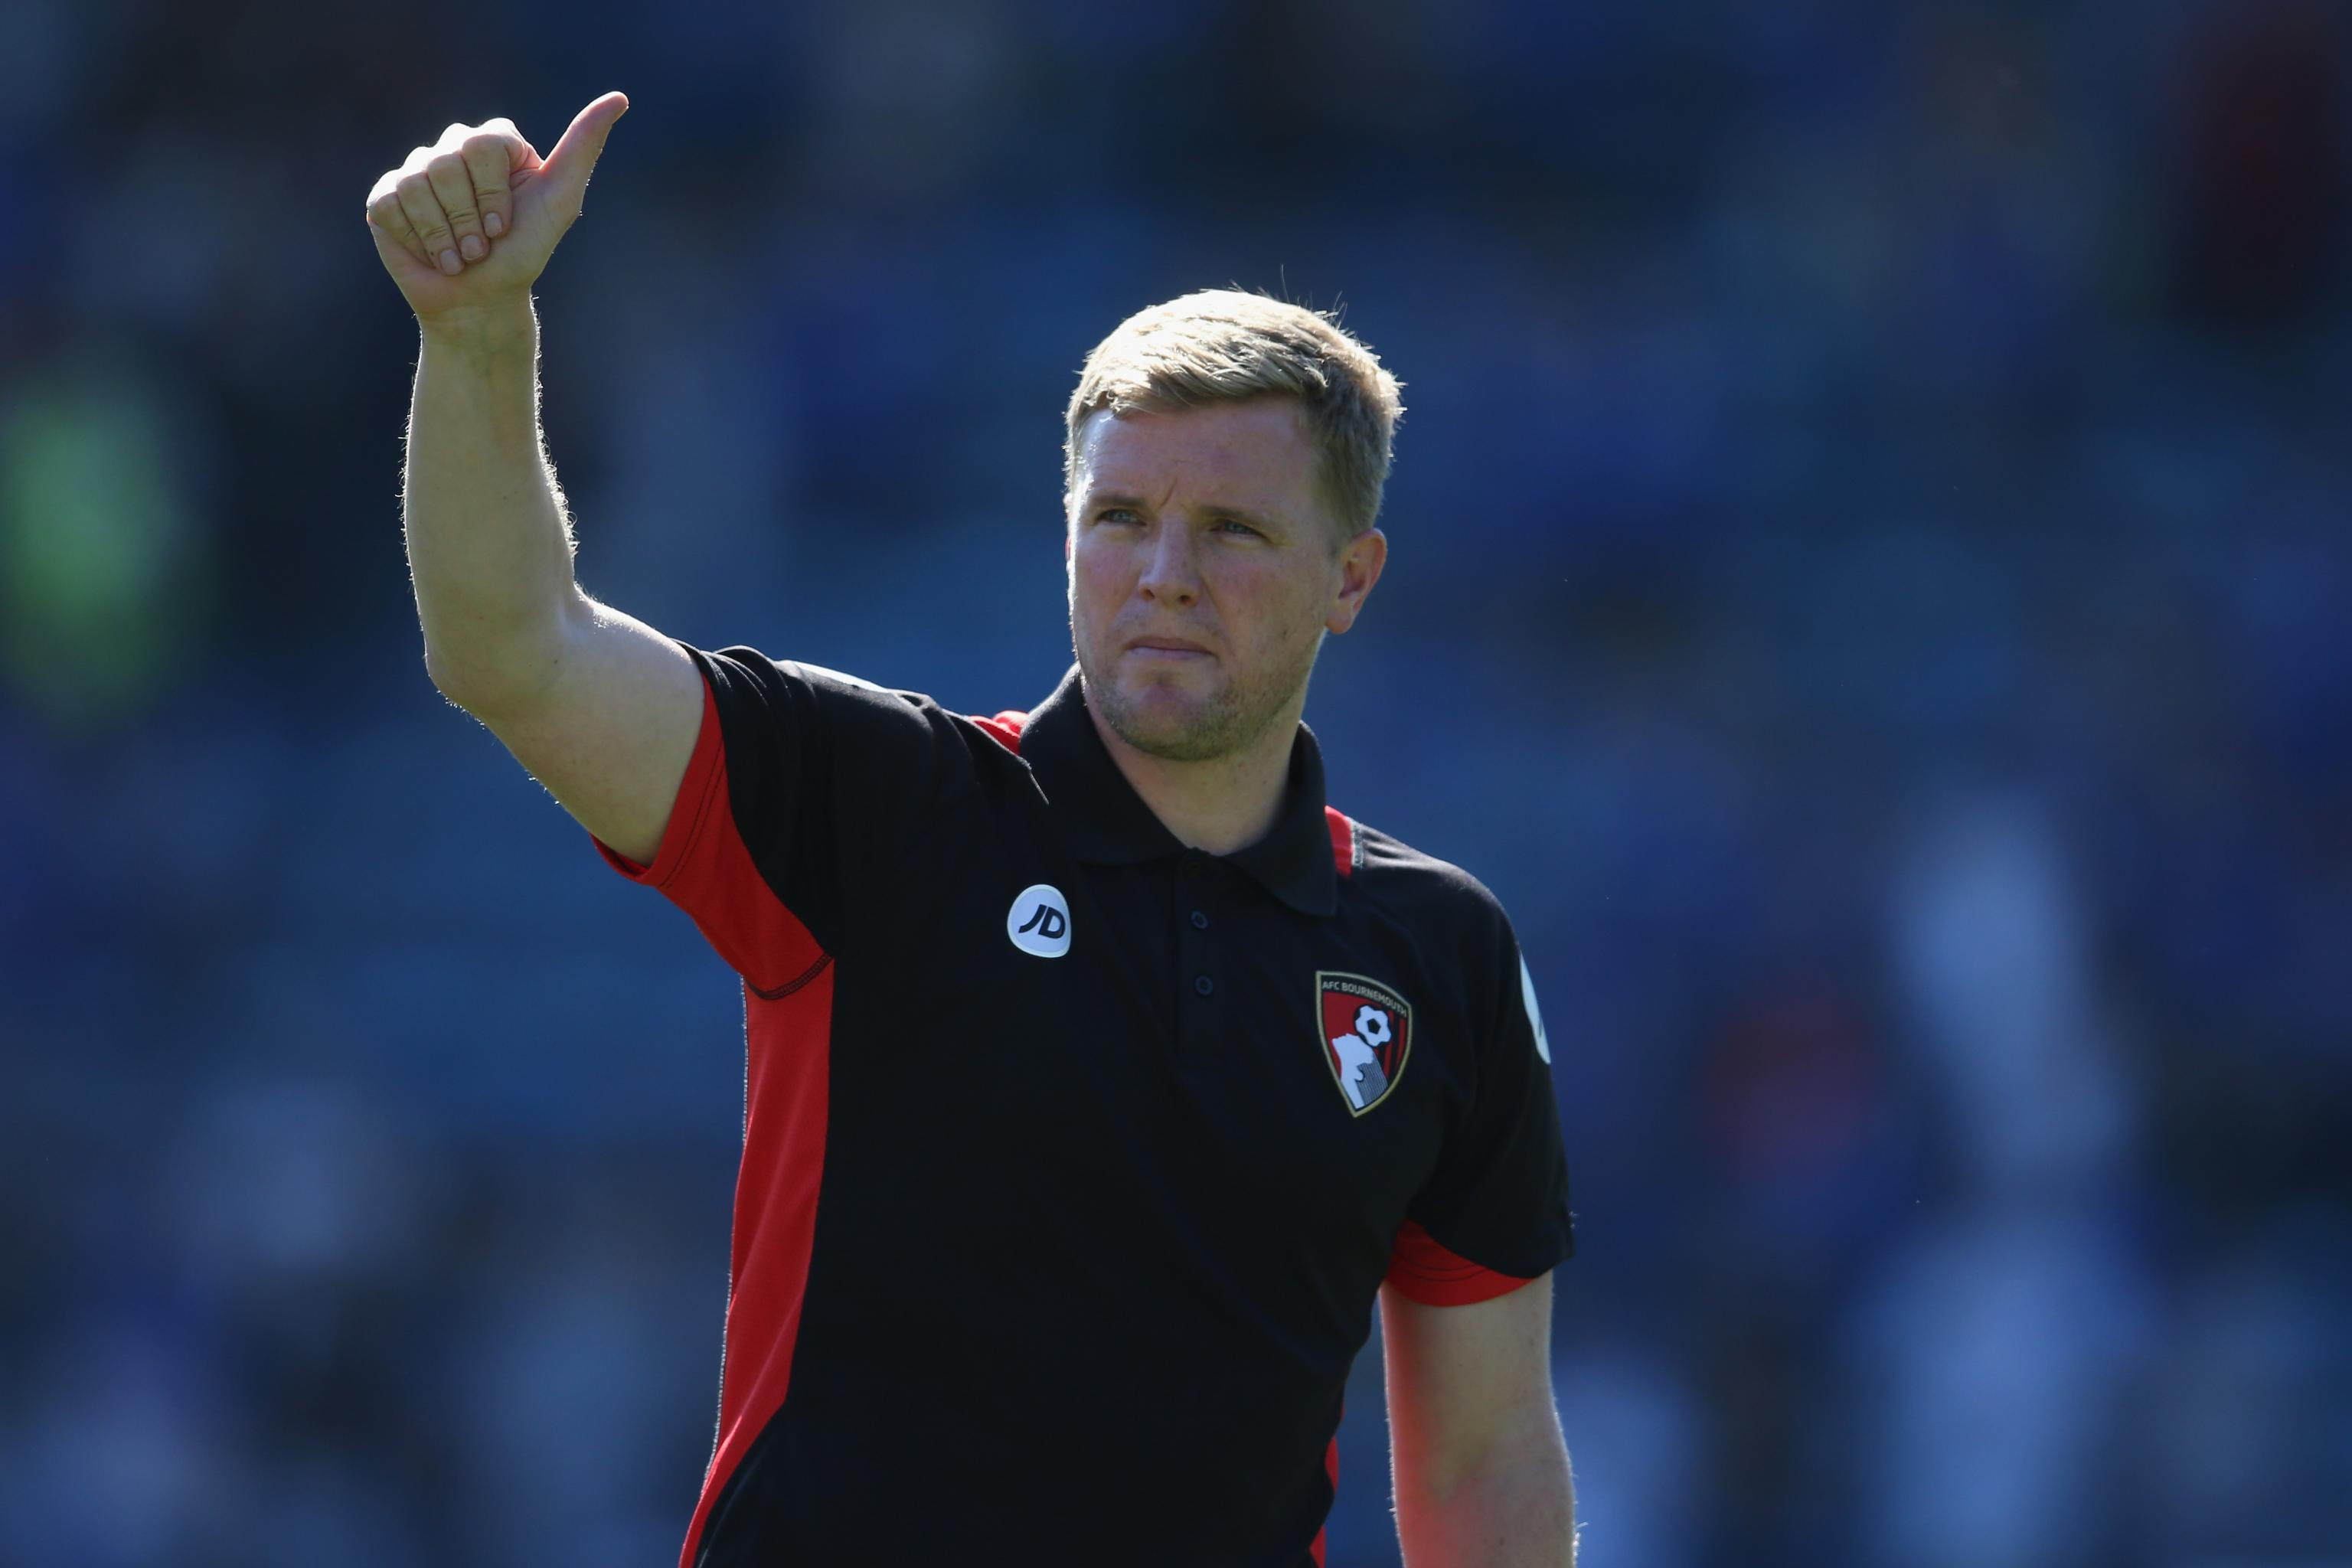 Eddie Howe Responds To Rumours He Could Replace Arsene Wenger As Arsenal Manager Bleacher Report Latest News Videos And Highlights